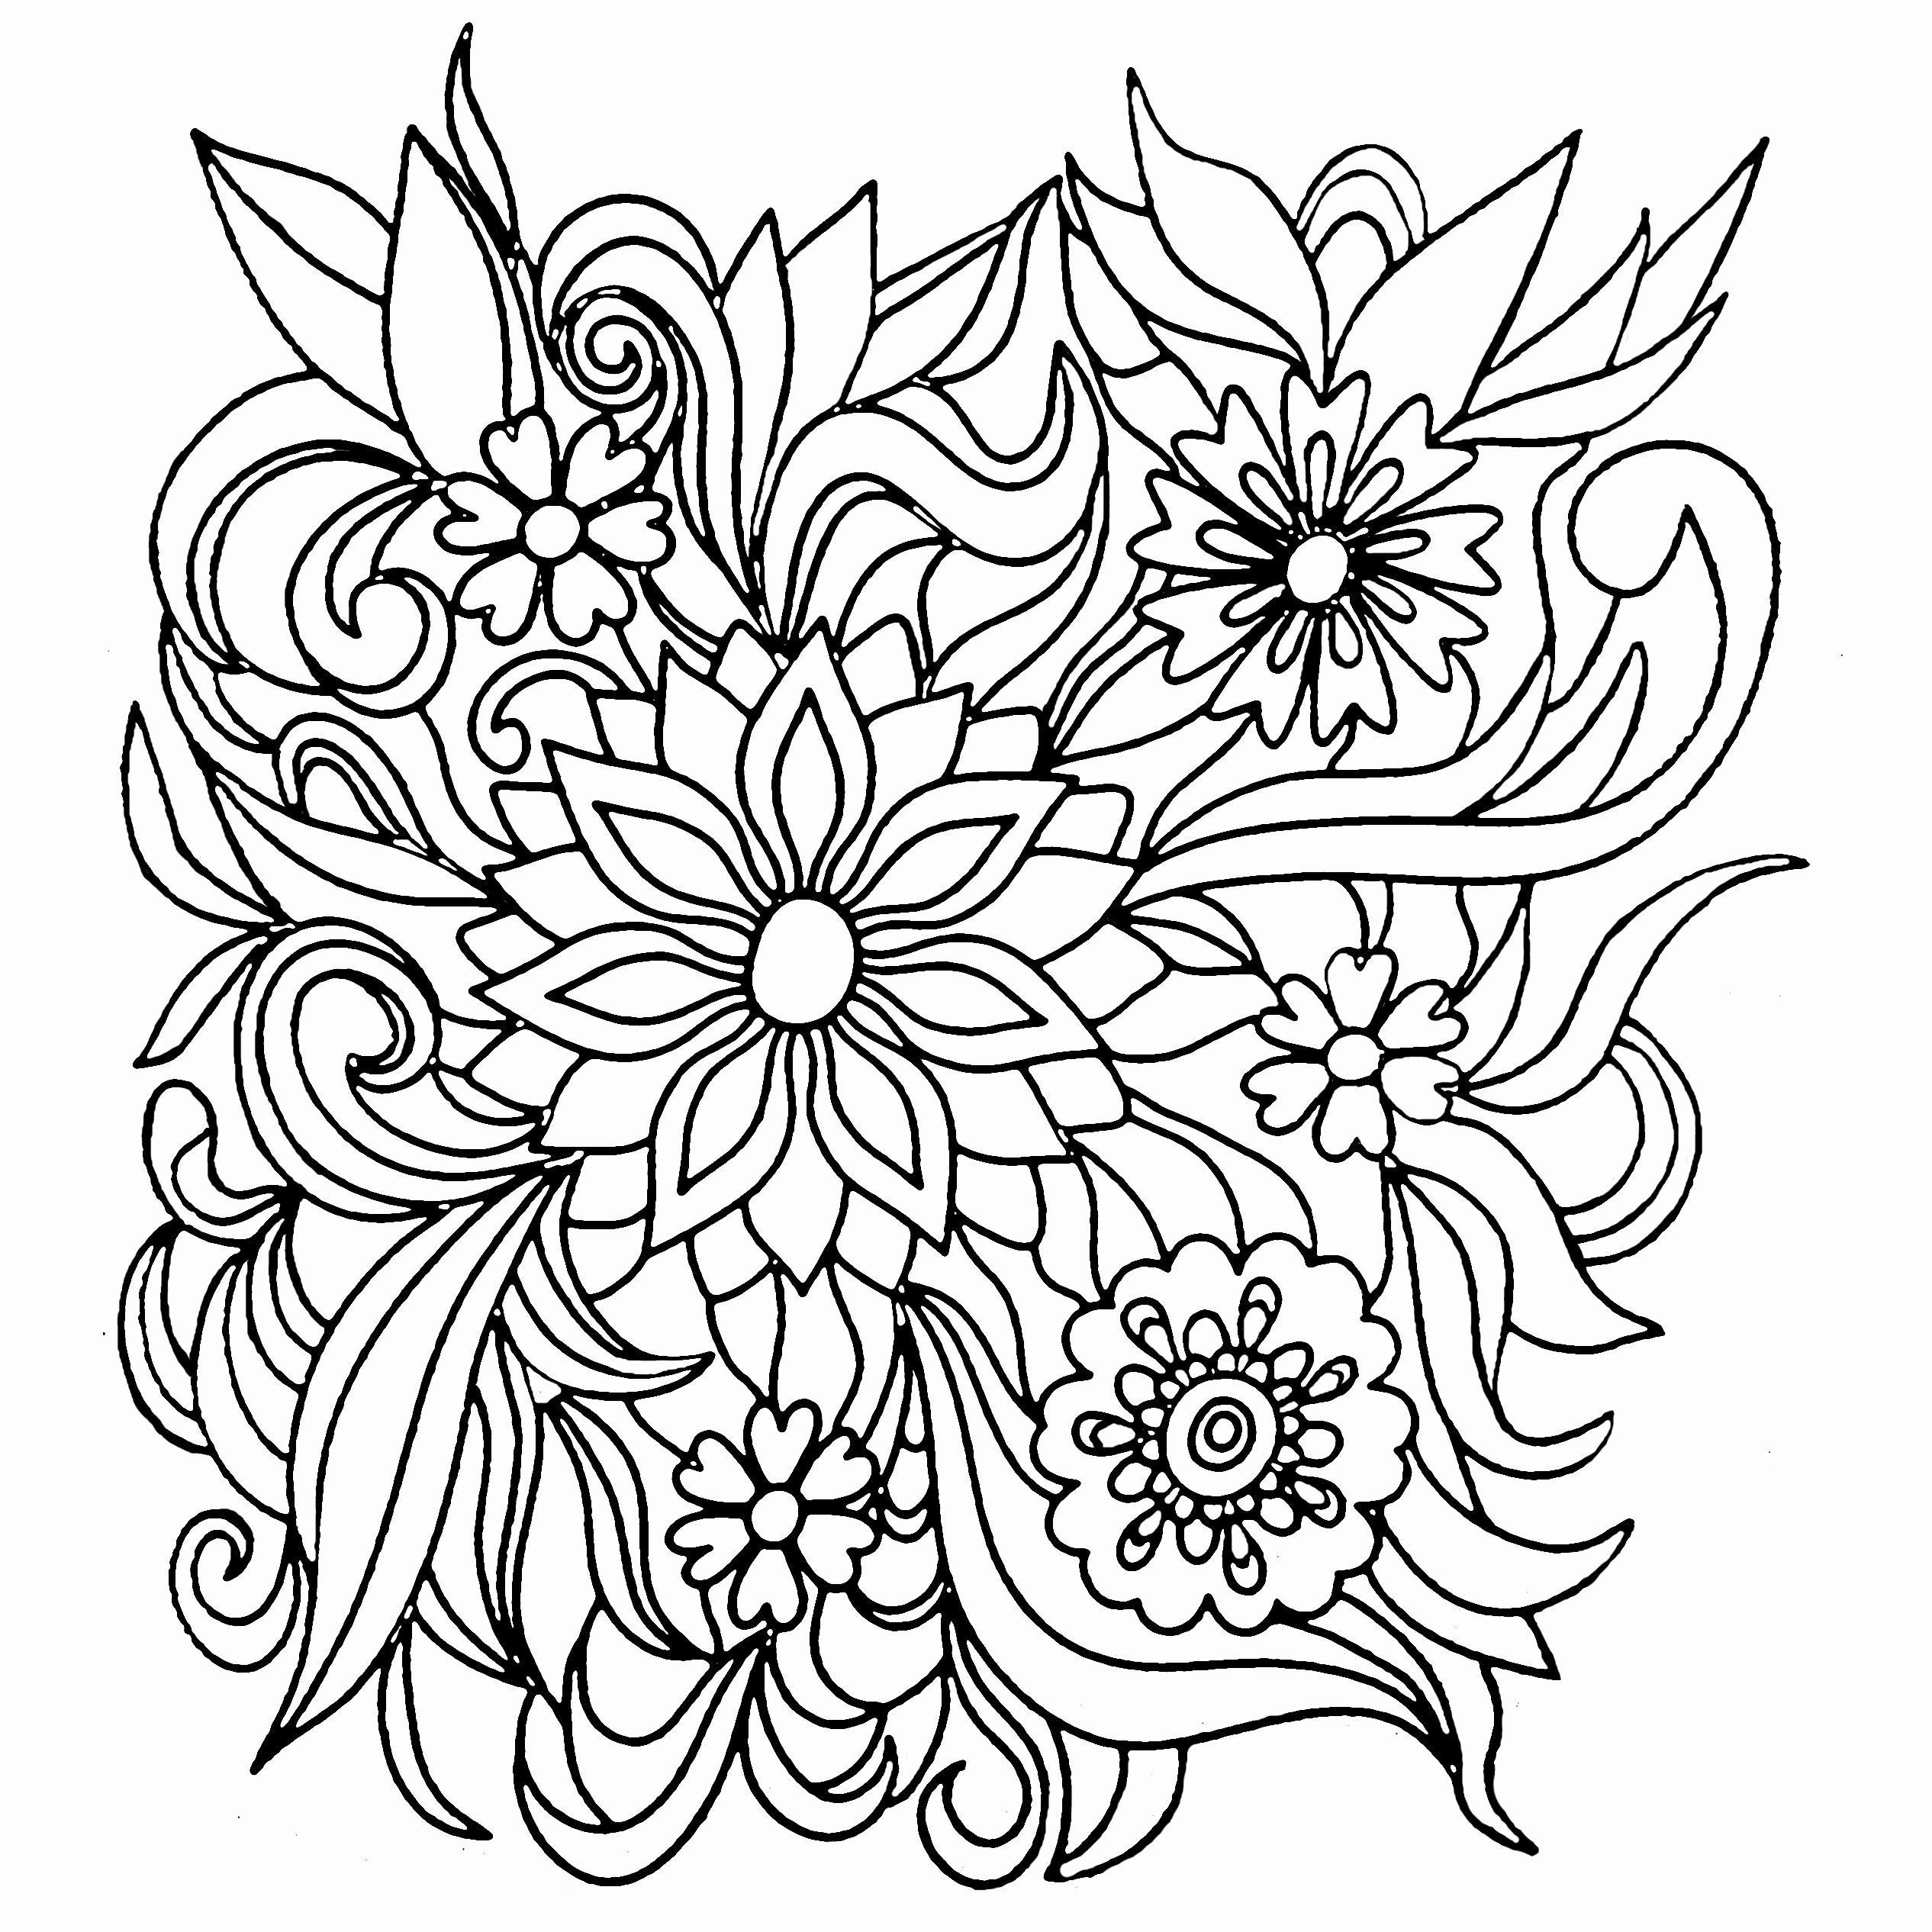 - 32 Adult Coloring Book Flowers In 2020 Flower Coloring Pages